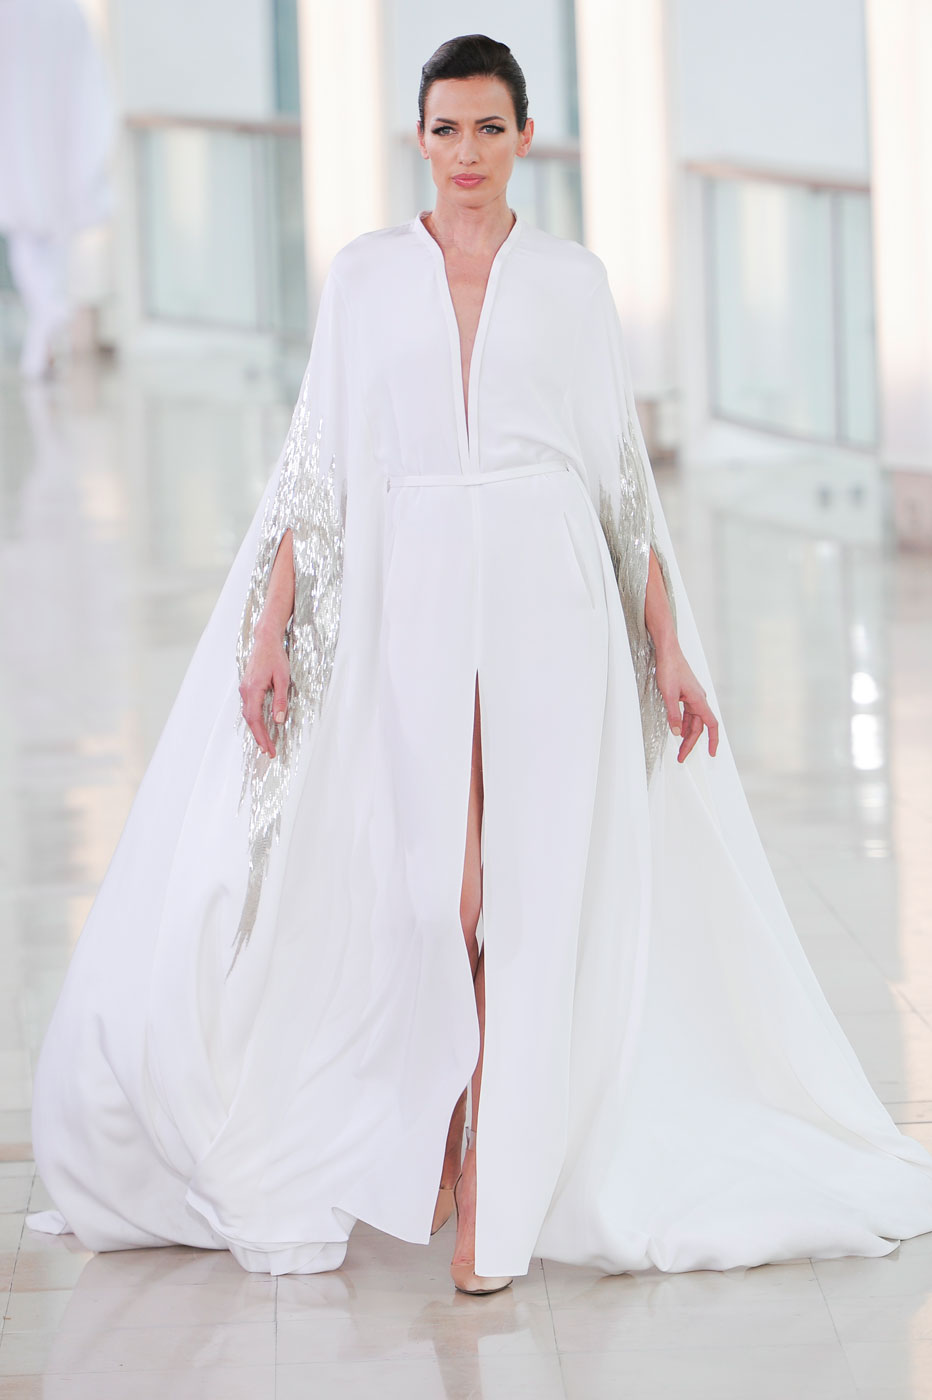 stephane-rolland-fashion-runway-show-haute-couture-paris-spring-2015-the-impression-16